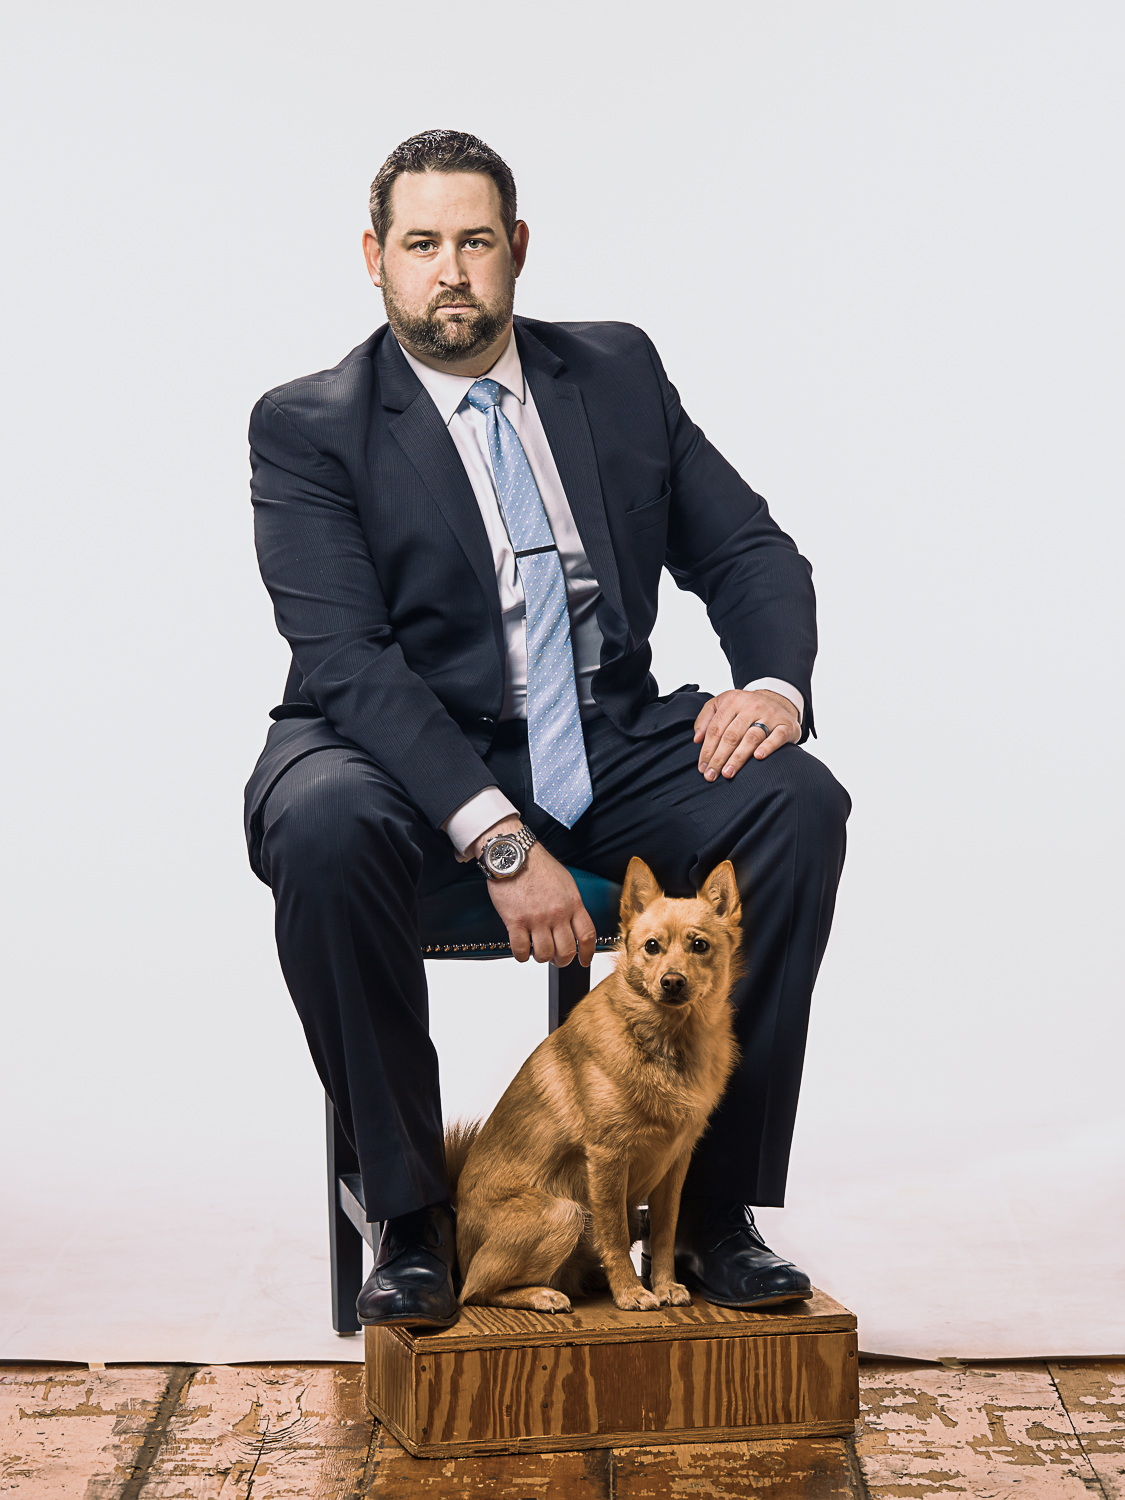 stoic portrait of business man and his dog